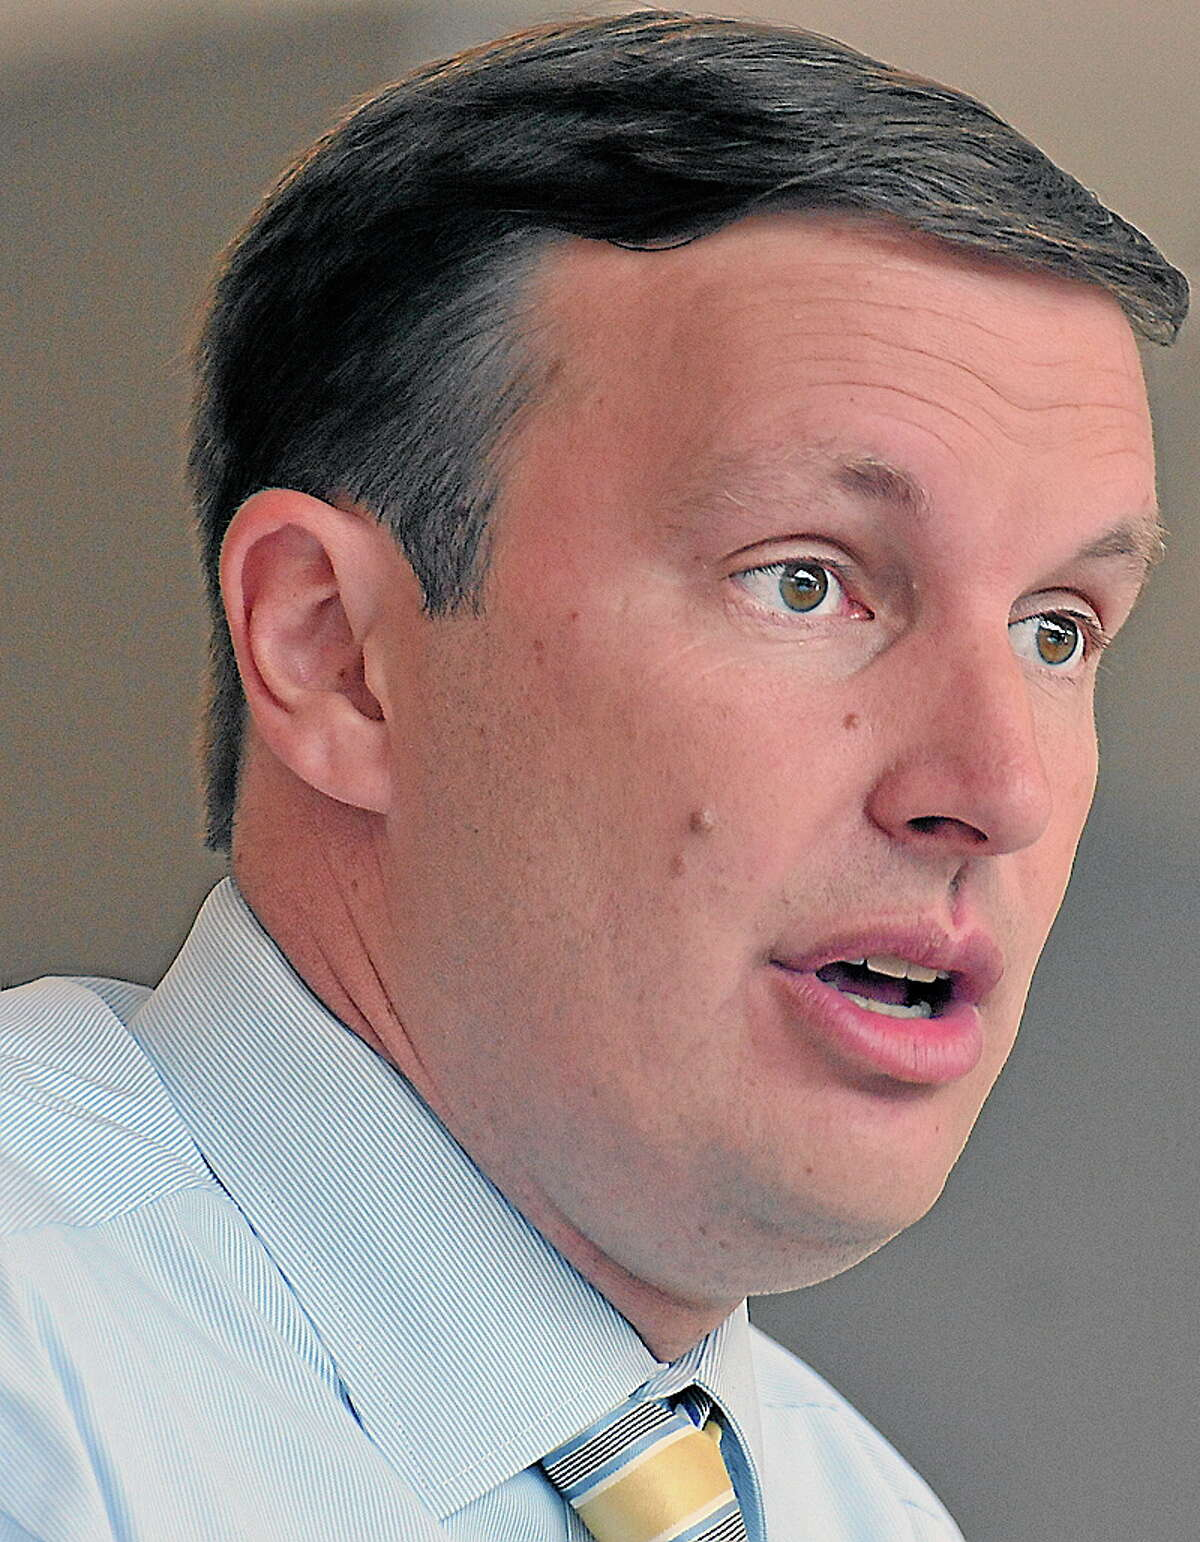 Wallingford-- Senate candidate Chris Murphy speaks to employees and media at Proton OnSite, a Wallingford based company that develops Hydrogen Generation Systems. Murphy hit the campaign trail again after willing the democratic primary and quickly announced that he wants to debate Republican candidate Linda McMahon as soon as next week. Peter Casolino/New Haven Register 8/15/12